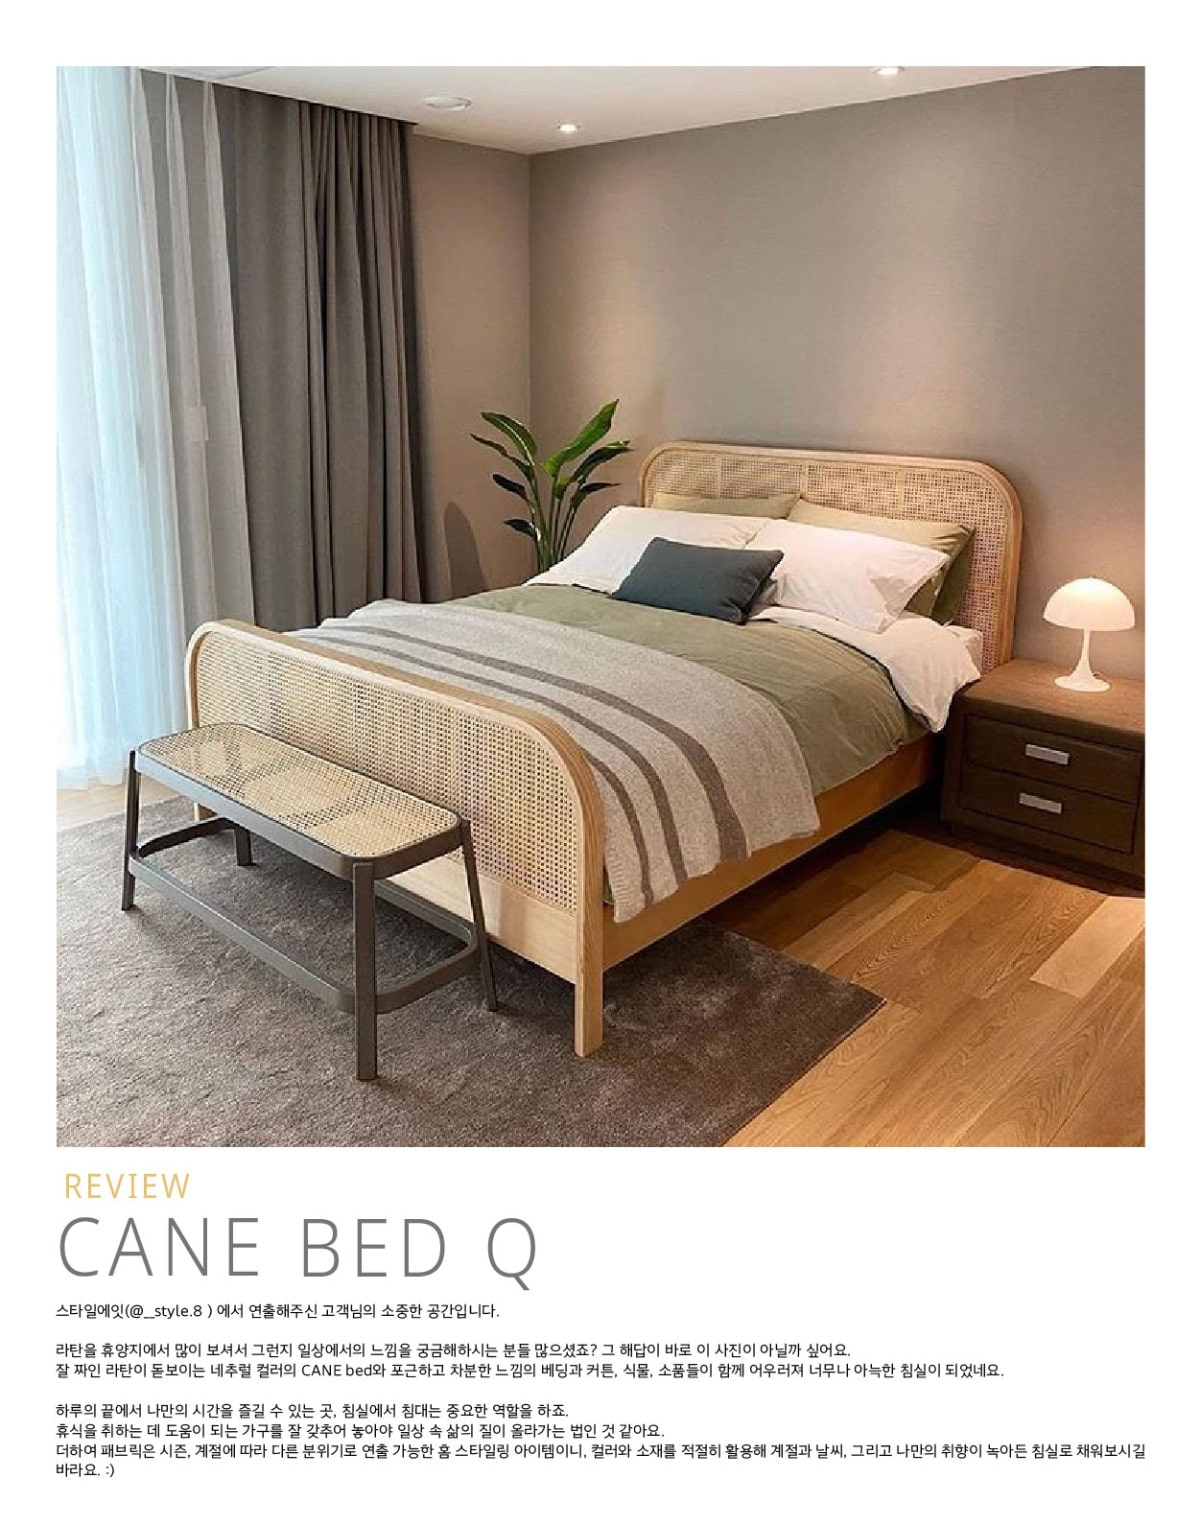 CANE bed Q, natural